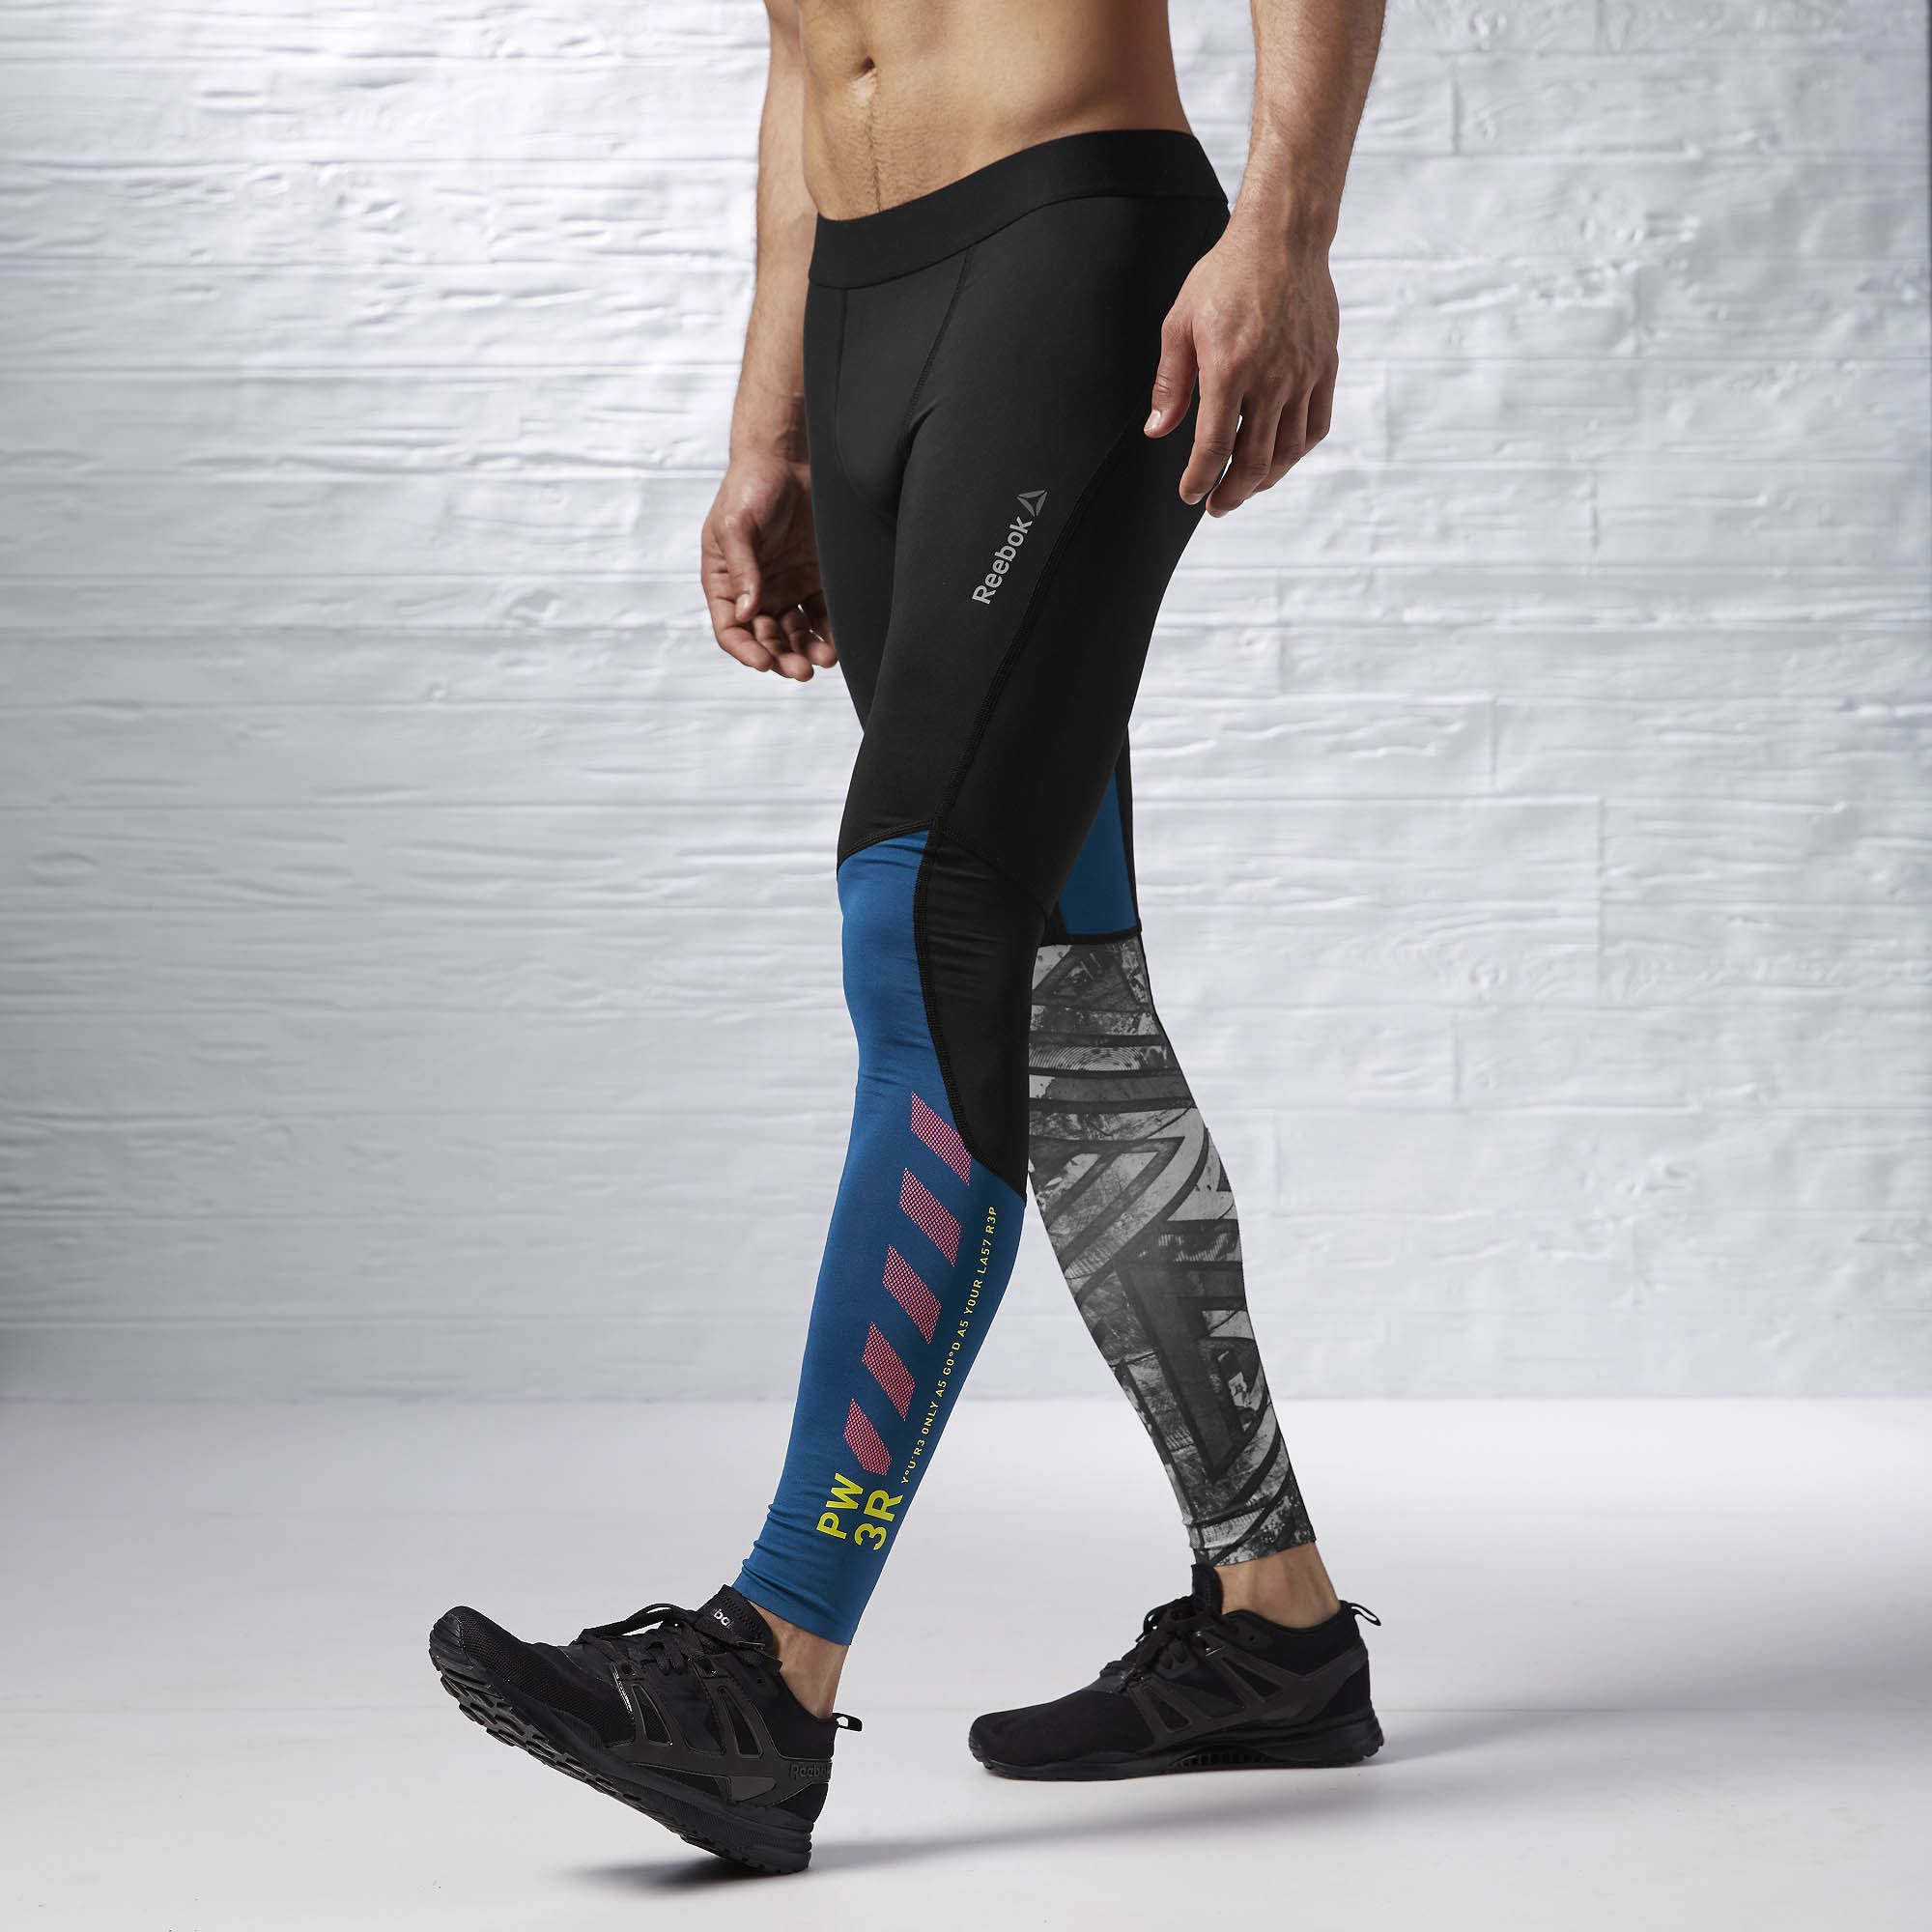 new styles outlet online outlet for sale Reebok - Reebok ONE Series Fe26 Rush Compression Tight ...